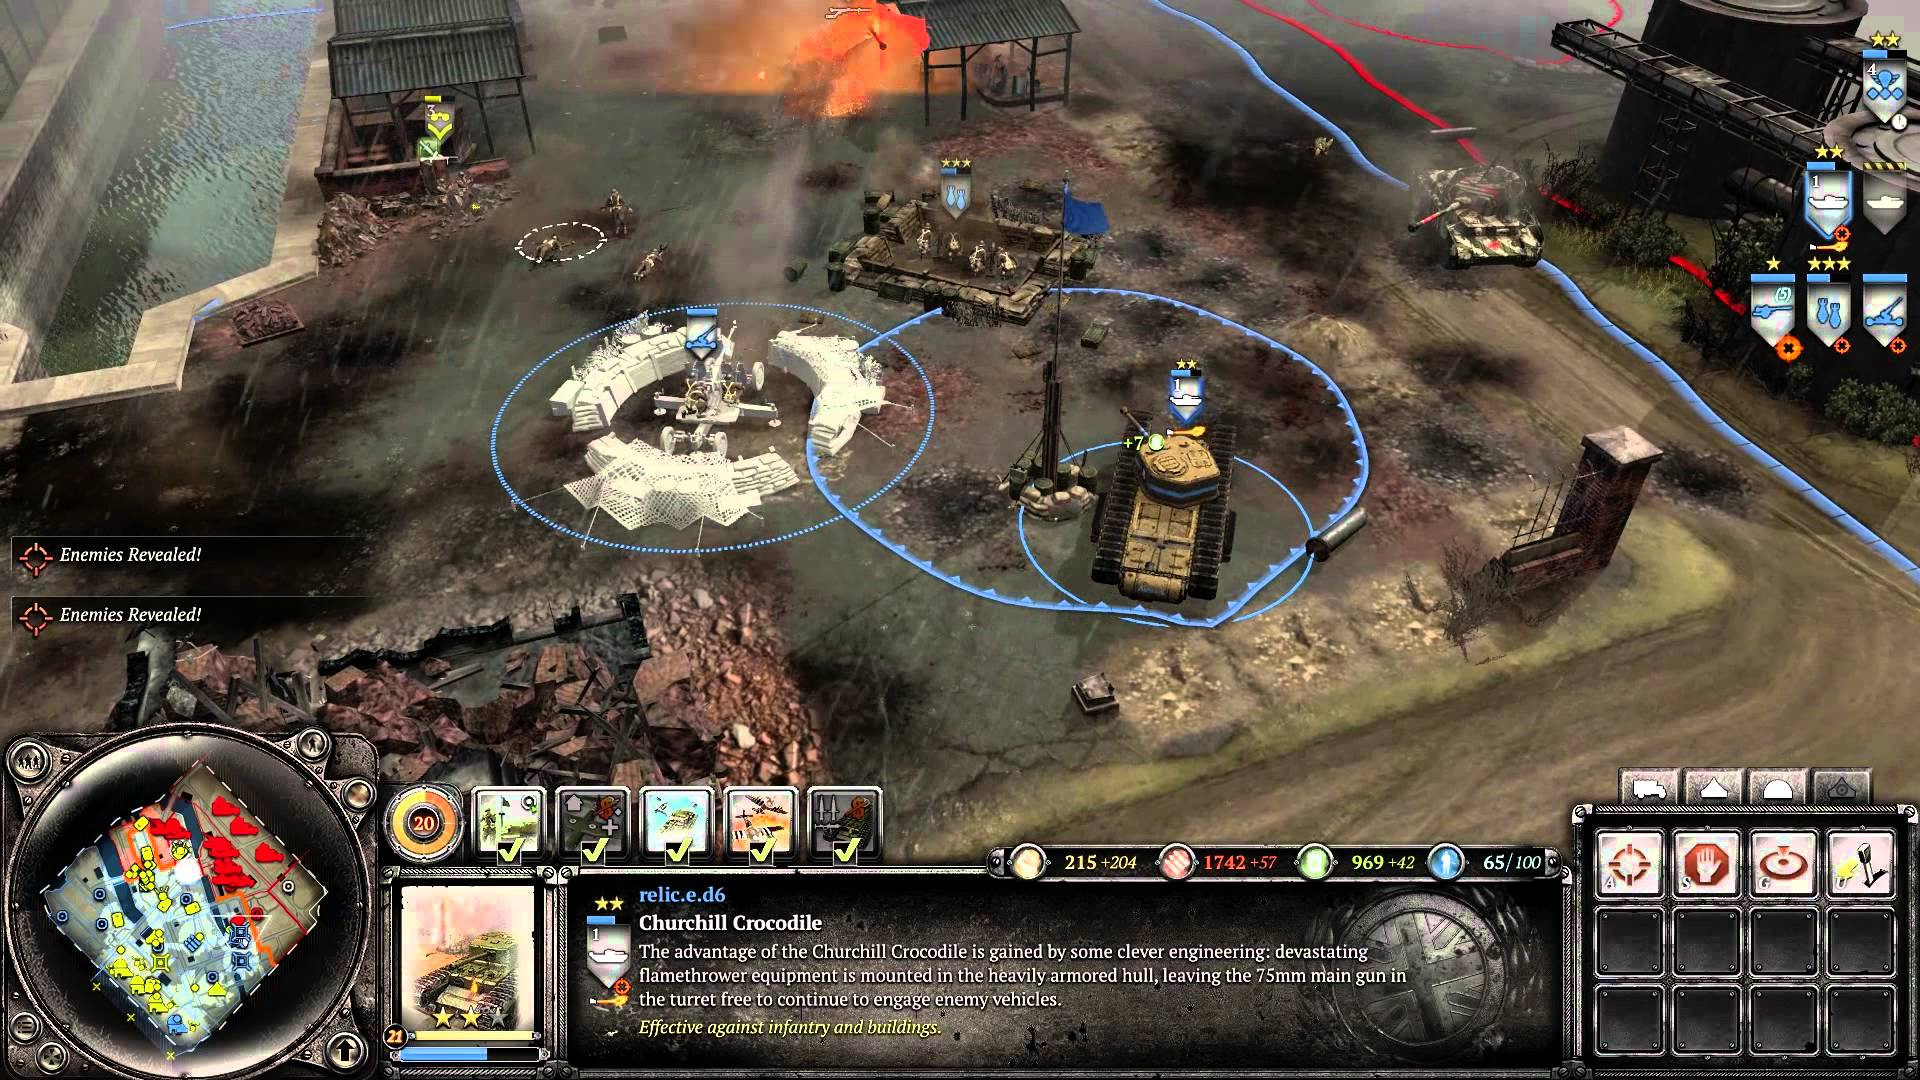 COH2: The British Forces – From History to Gameplay Pt. 2 (Dev Diary) video thumbnail